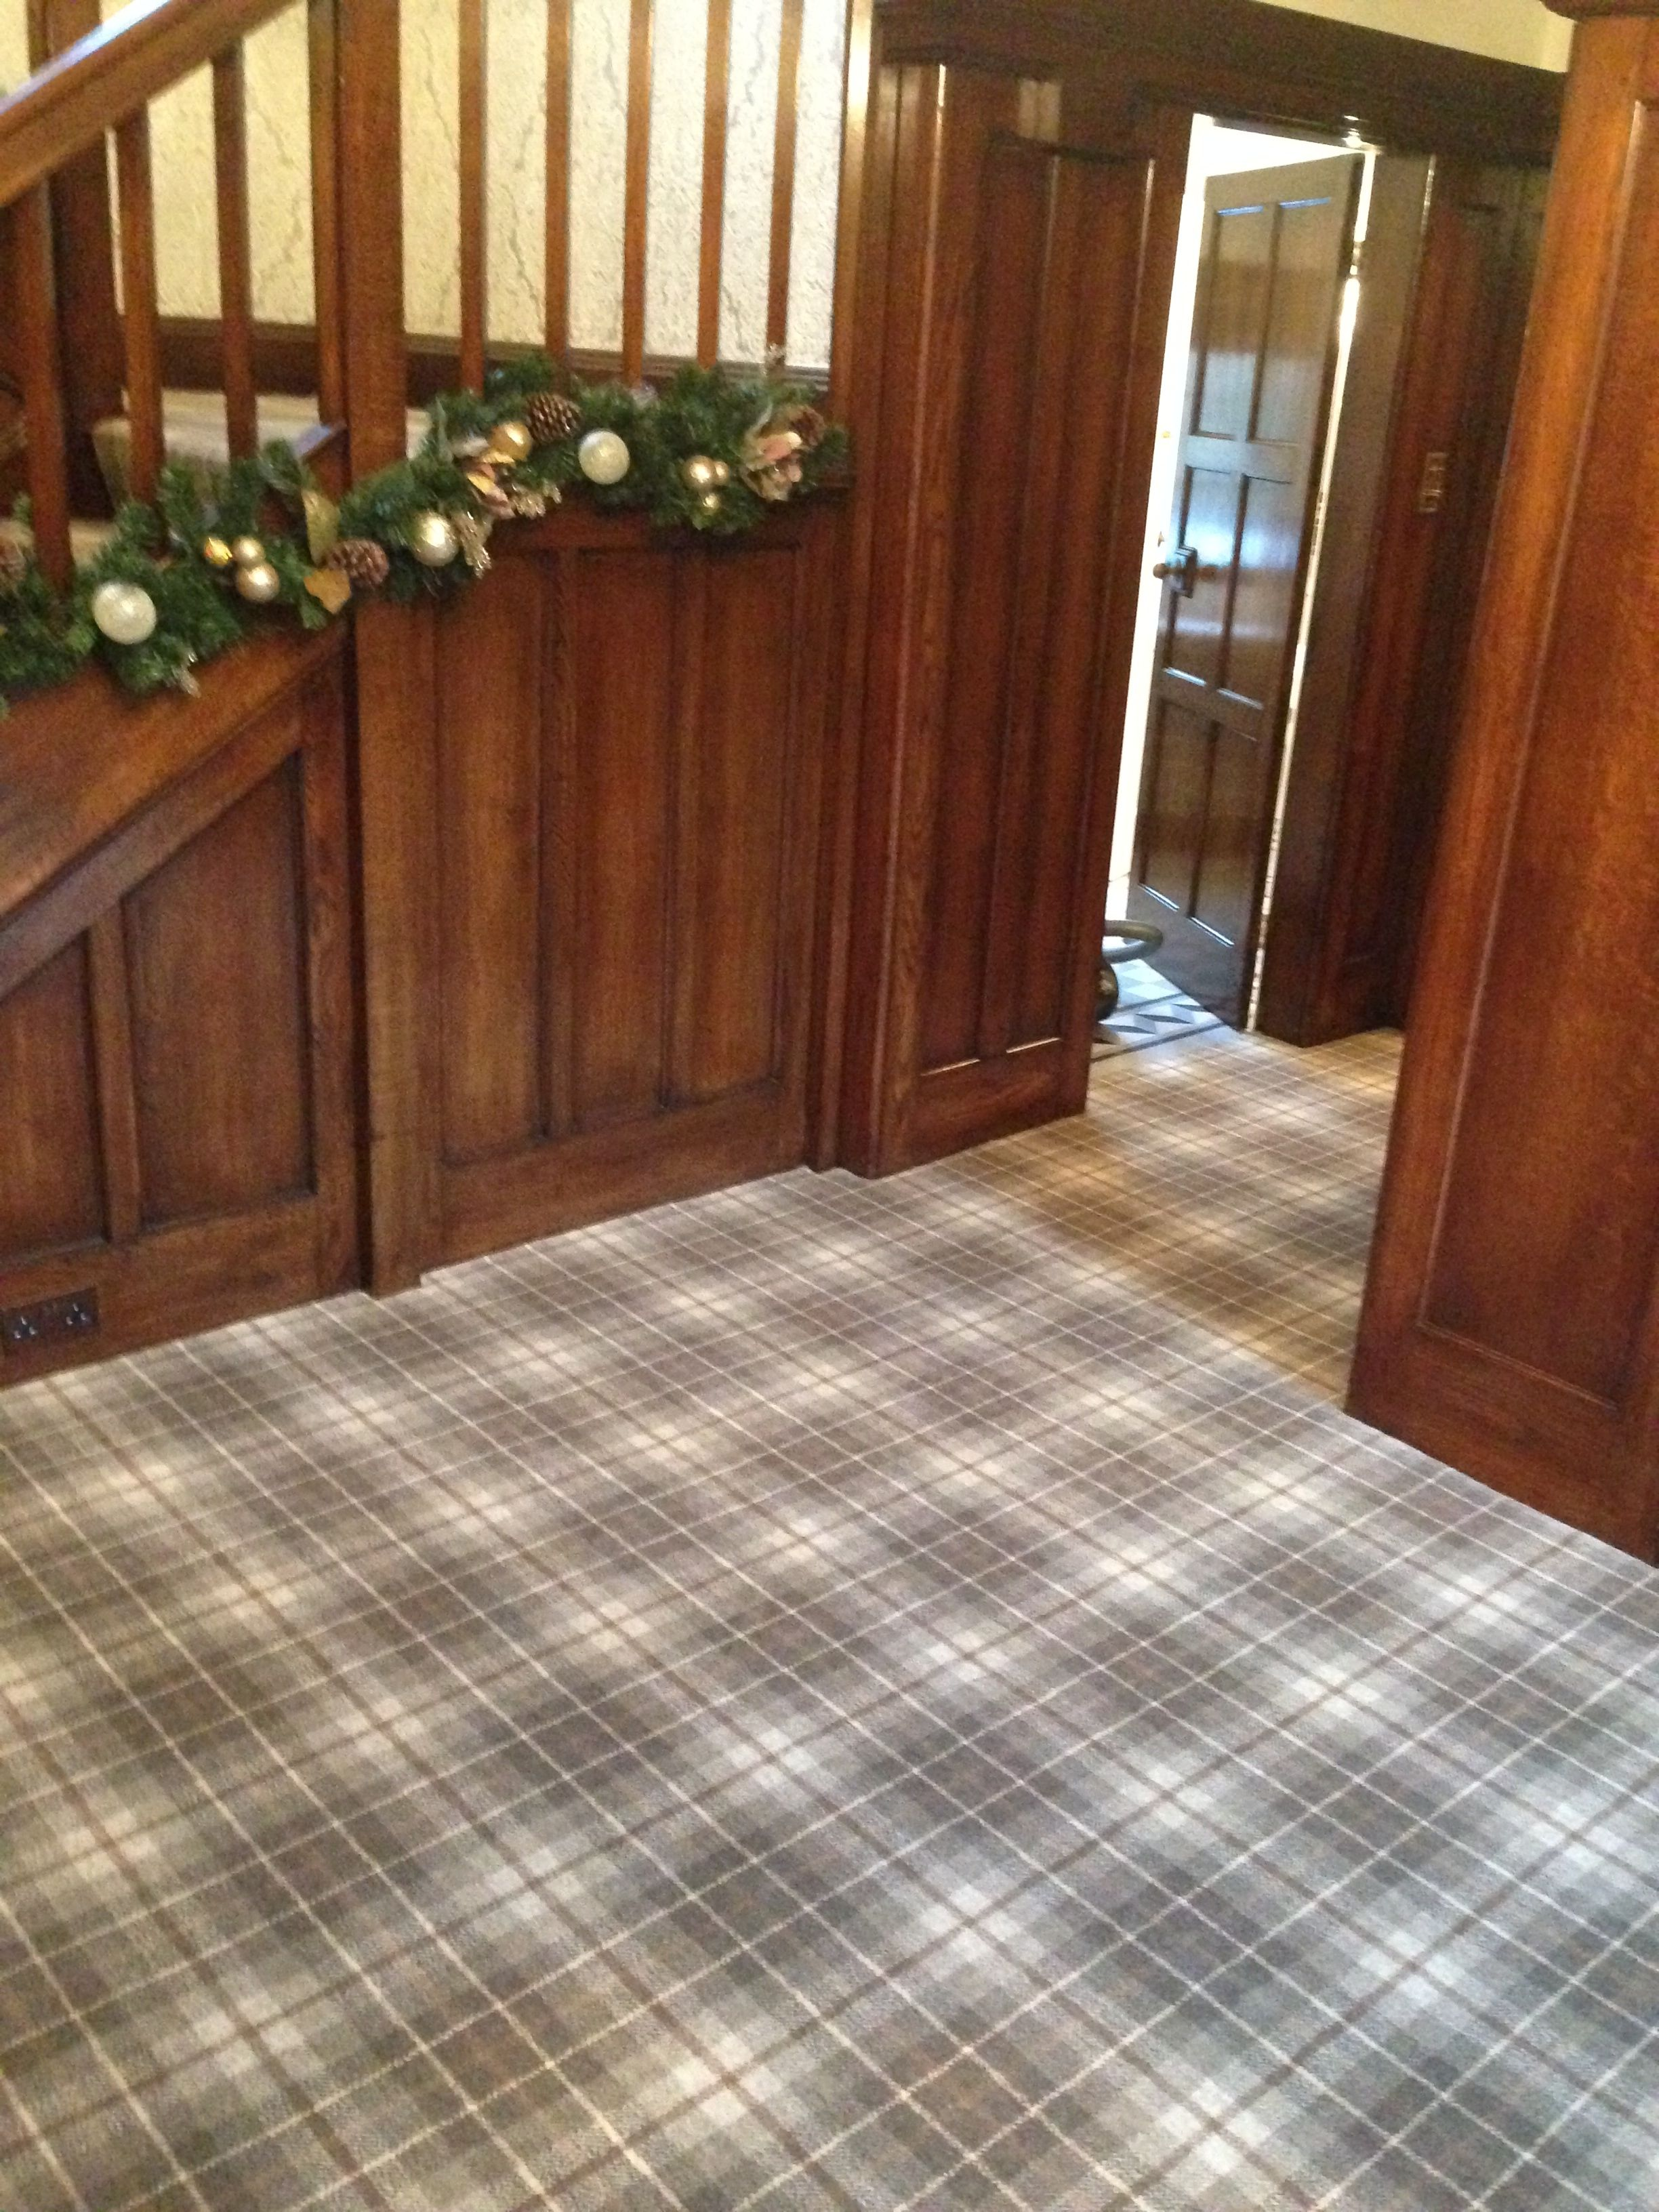 Gallery Briggate House Interiors Tartan Carpet Patterned Carpet Bedroom Carpet